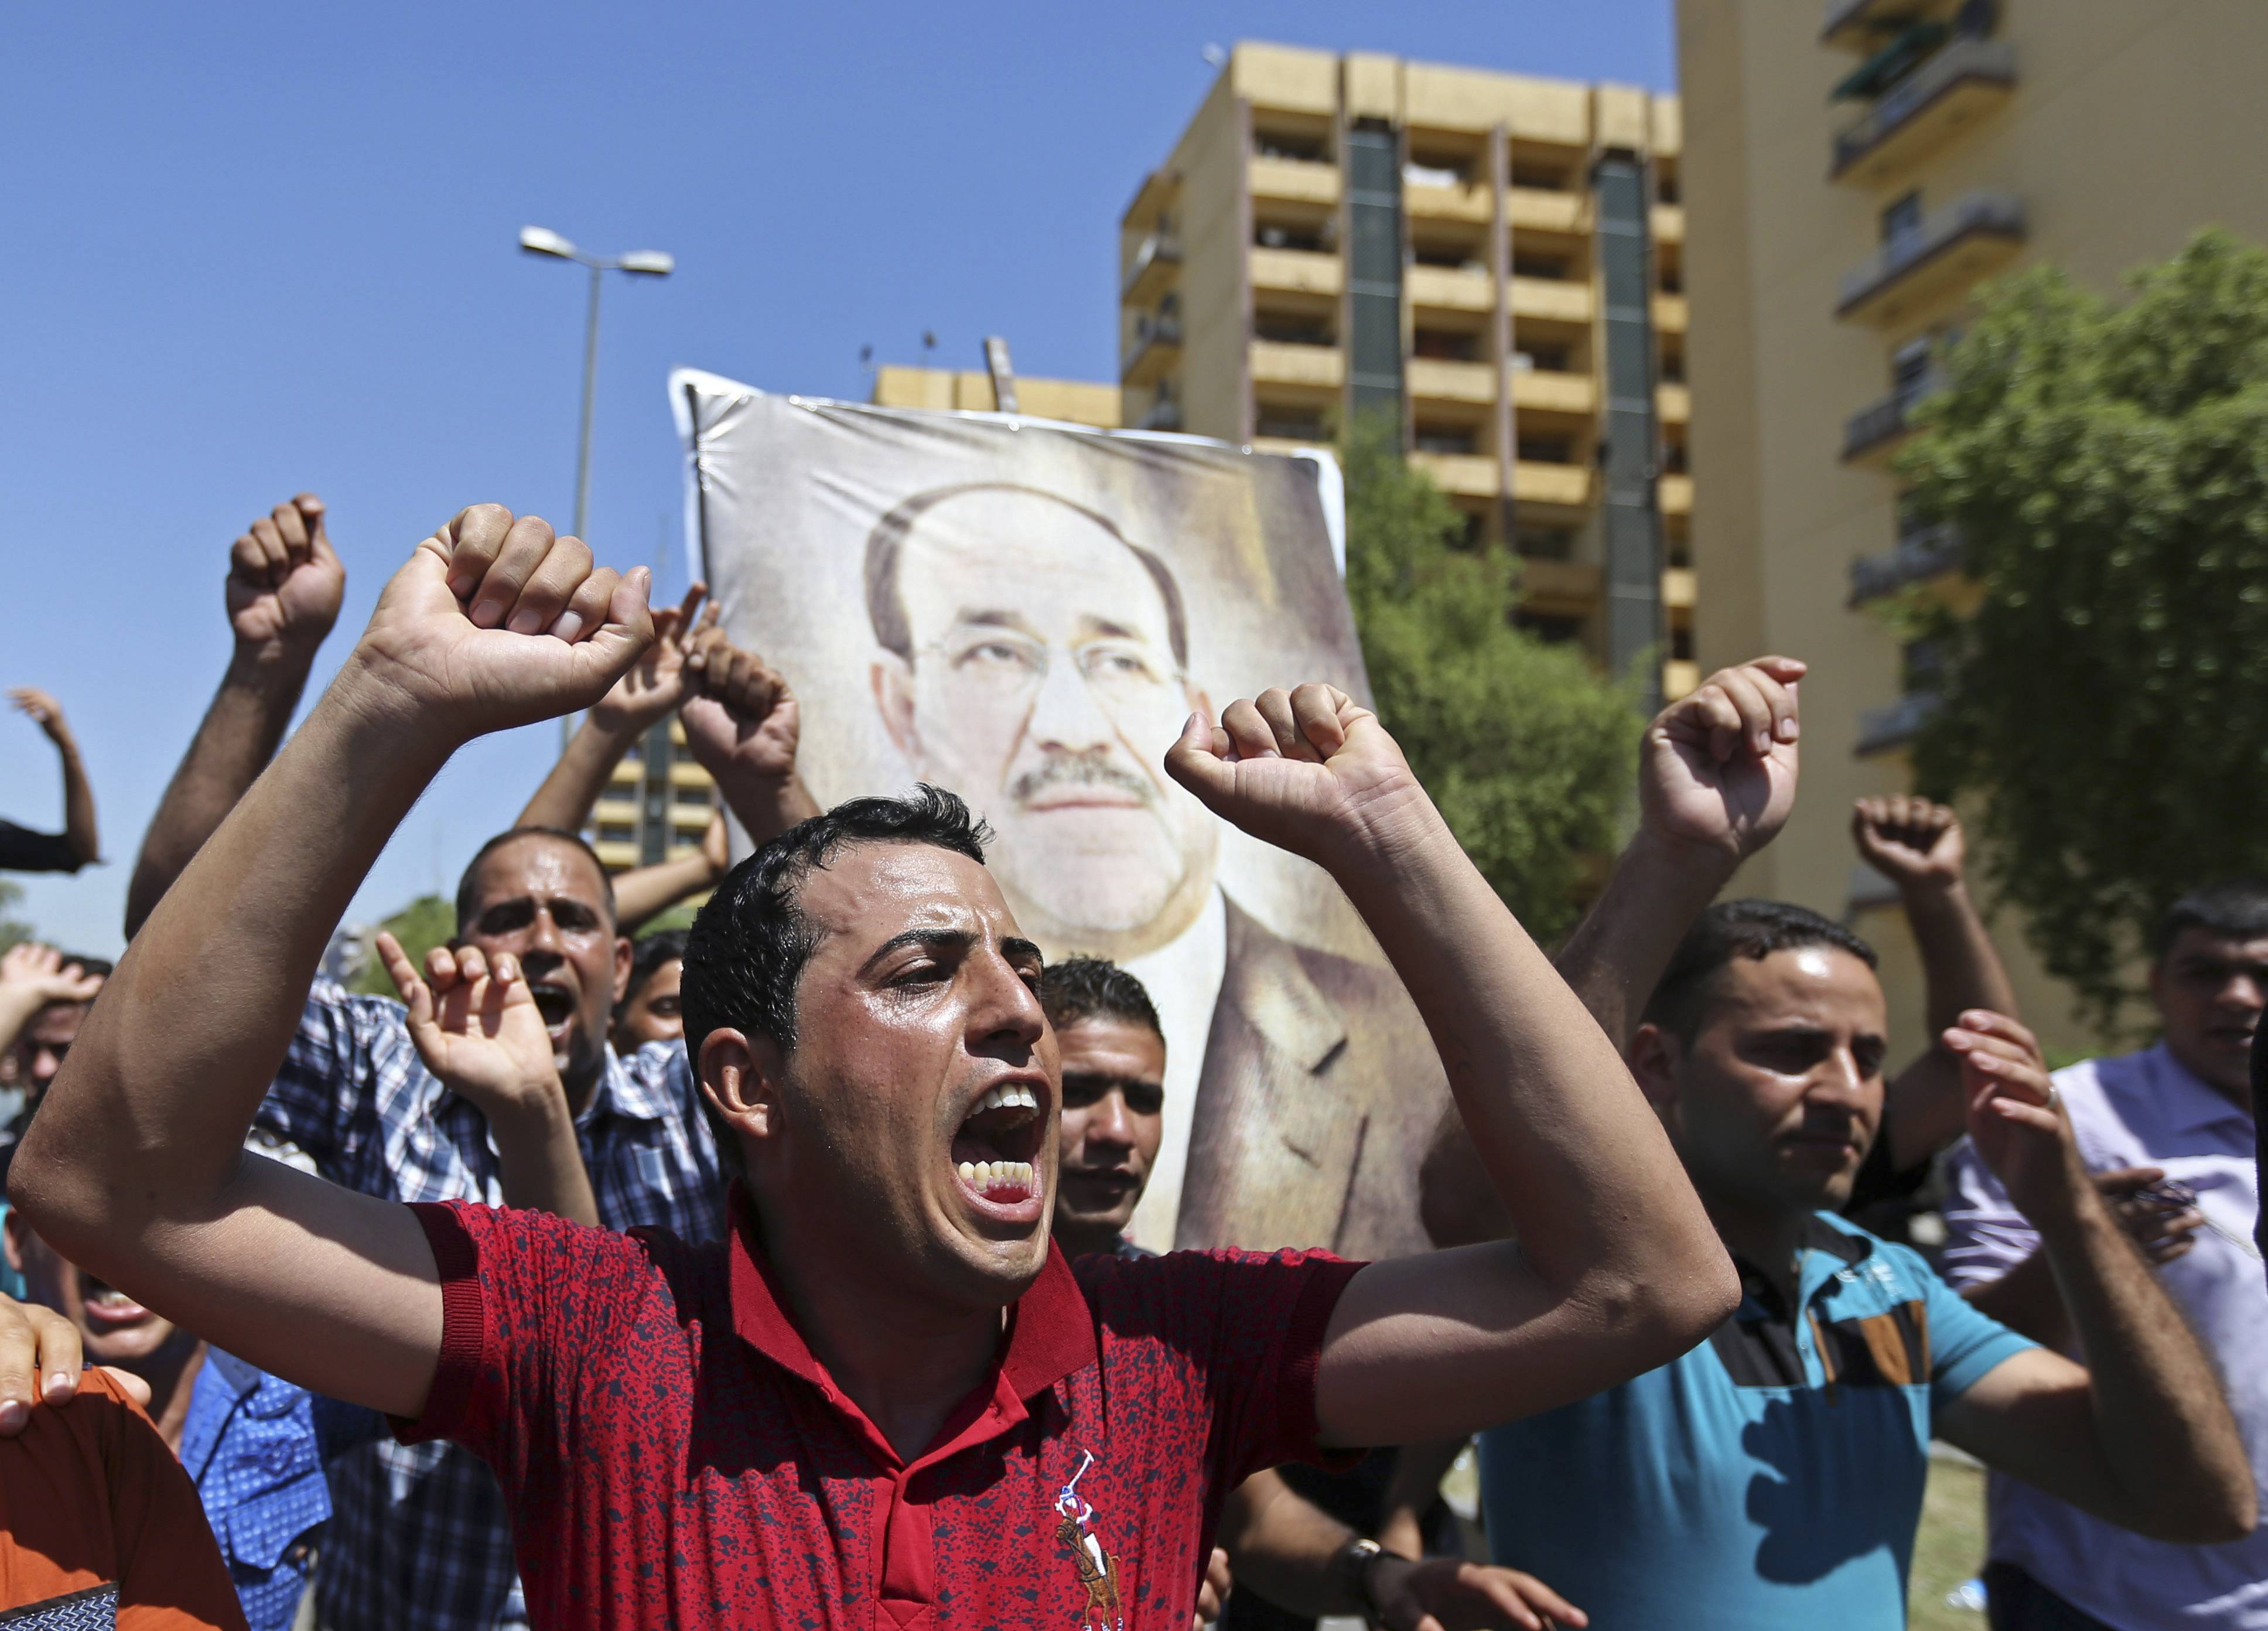 Iraqis chant pro-government slogans and display placards bearing a picture of embattled Prime Minister Nouri al-Maliki during a demonstration in Baghdad, Iraq, Monday, Aug. 11, 2014.